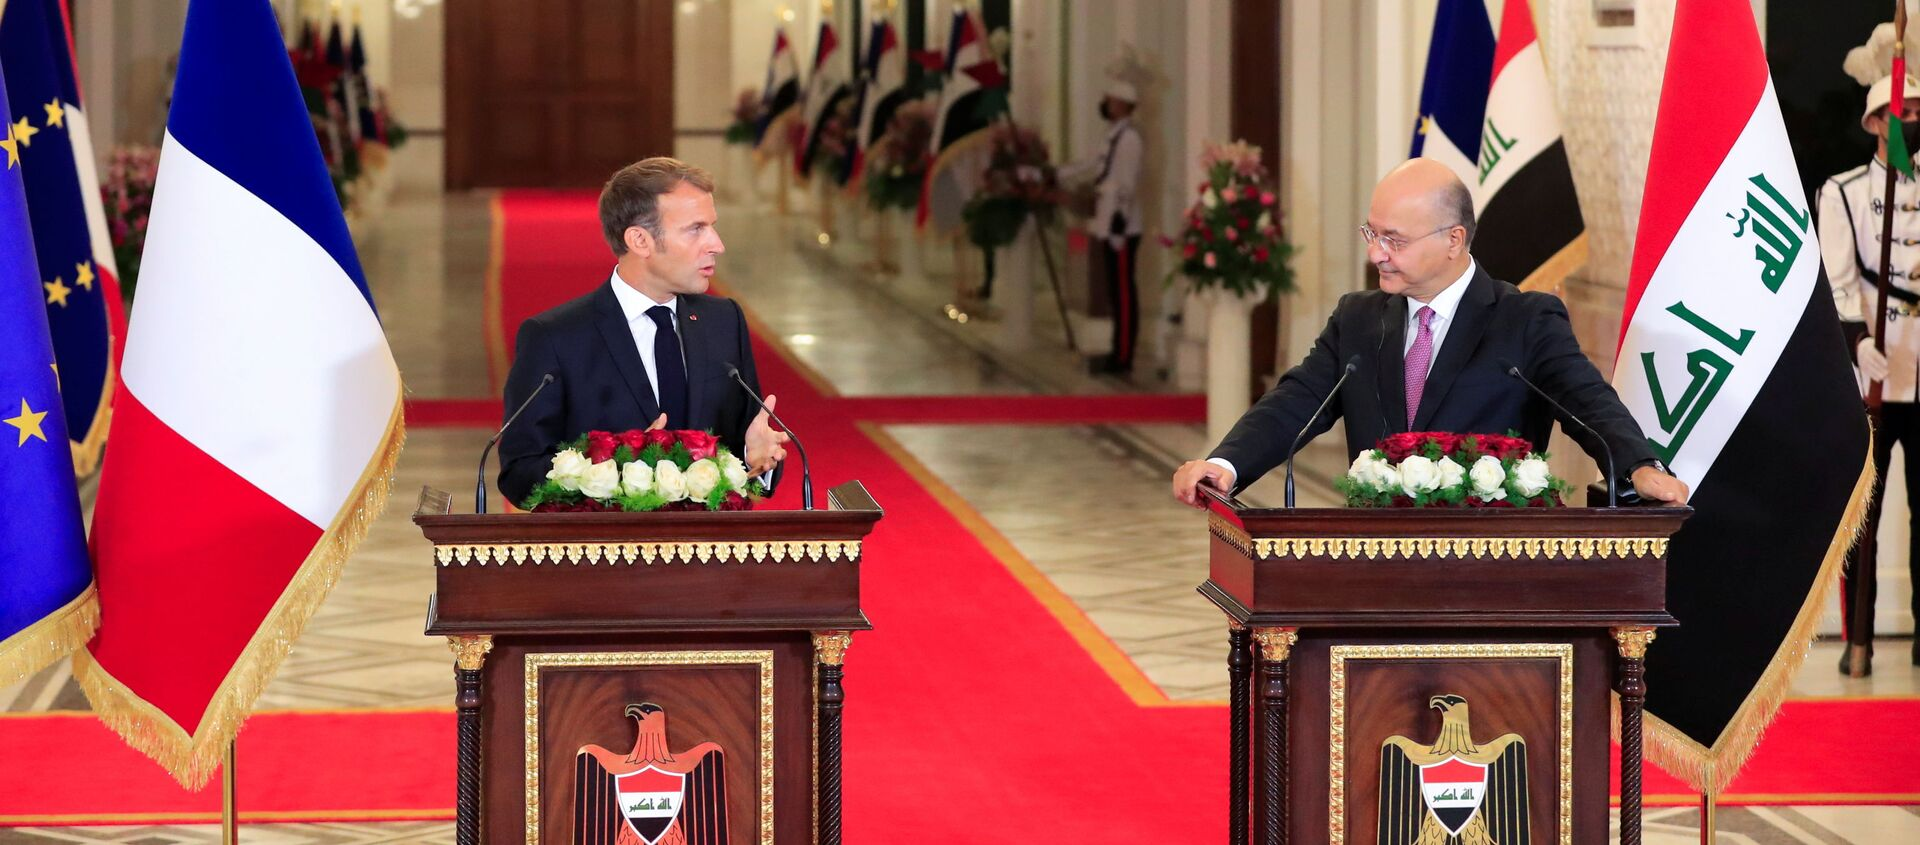 Iraq's President Barham Salih and France's President Emmanuel Macron attend a news conference ahead of the Baghdad summit at the Green Zone in Baghdad, Iraq August 28, 2021 - Sputnik International, 1920, 28.08.2021